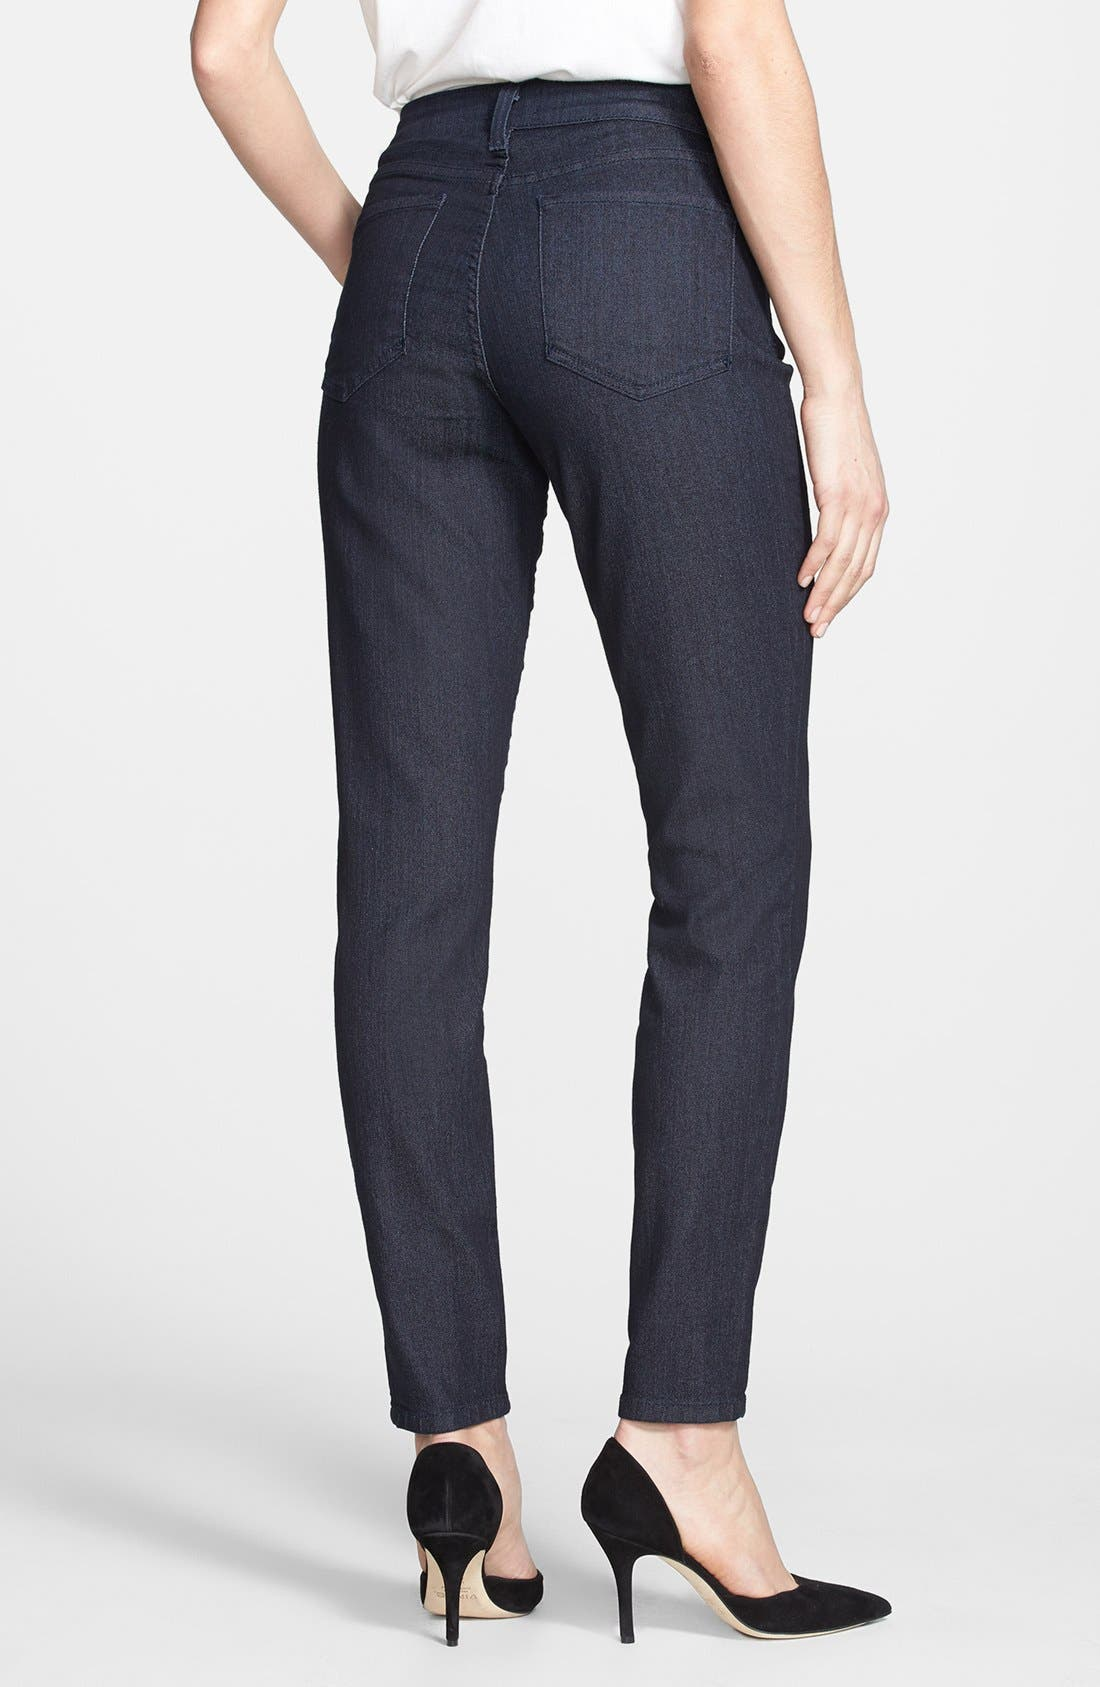 Alternate Image 2  - NYDJ 'Ami' Tonal Stitch Stretch Skinny Jeans (Dark Enzyme) (Regular & Petite)